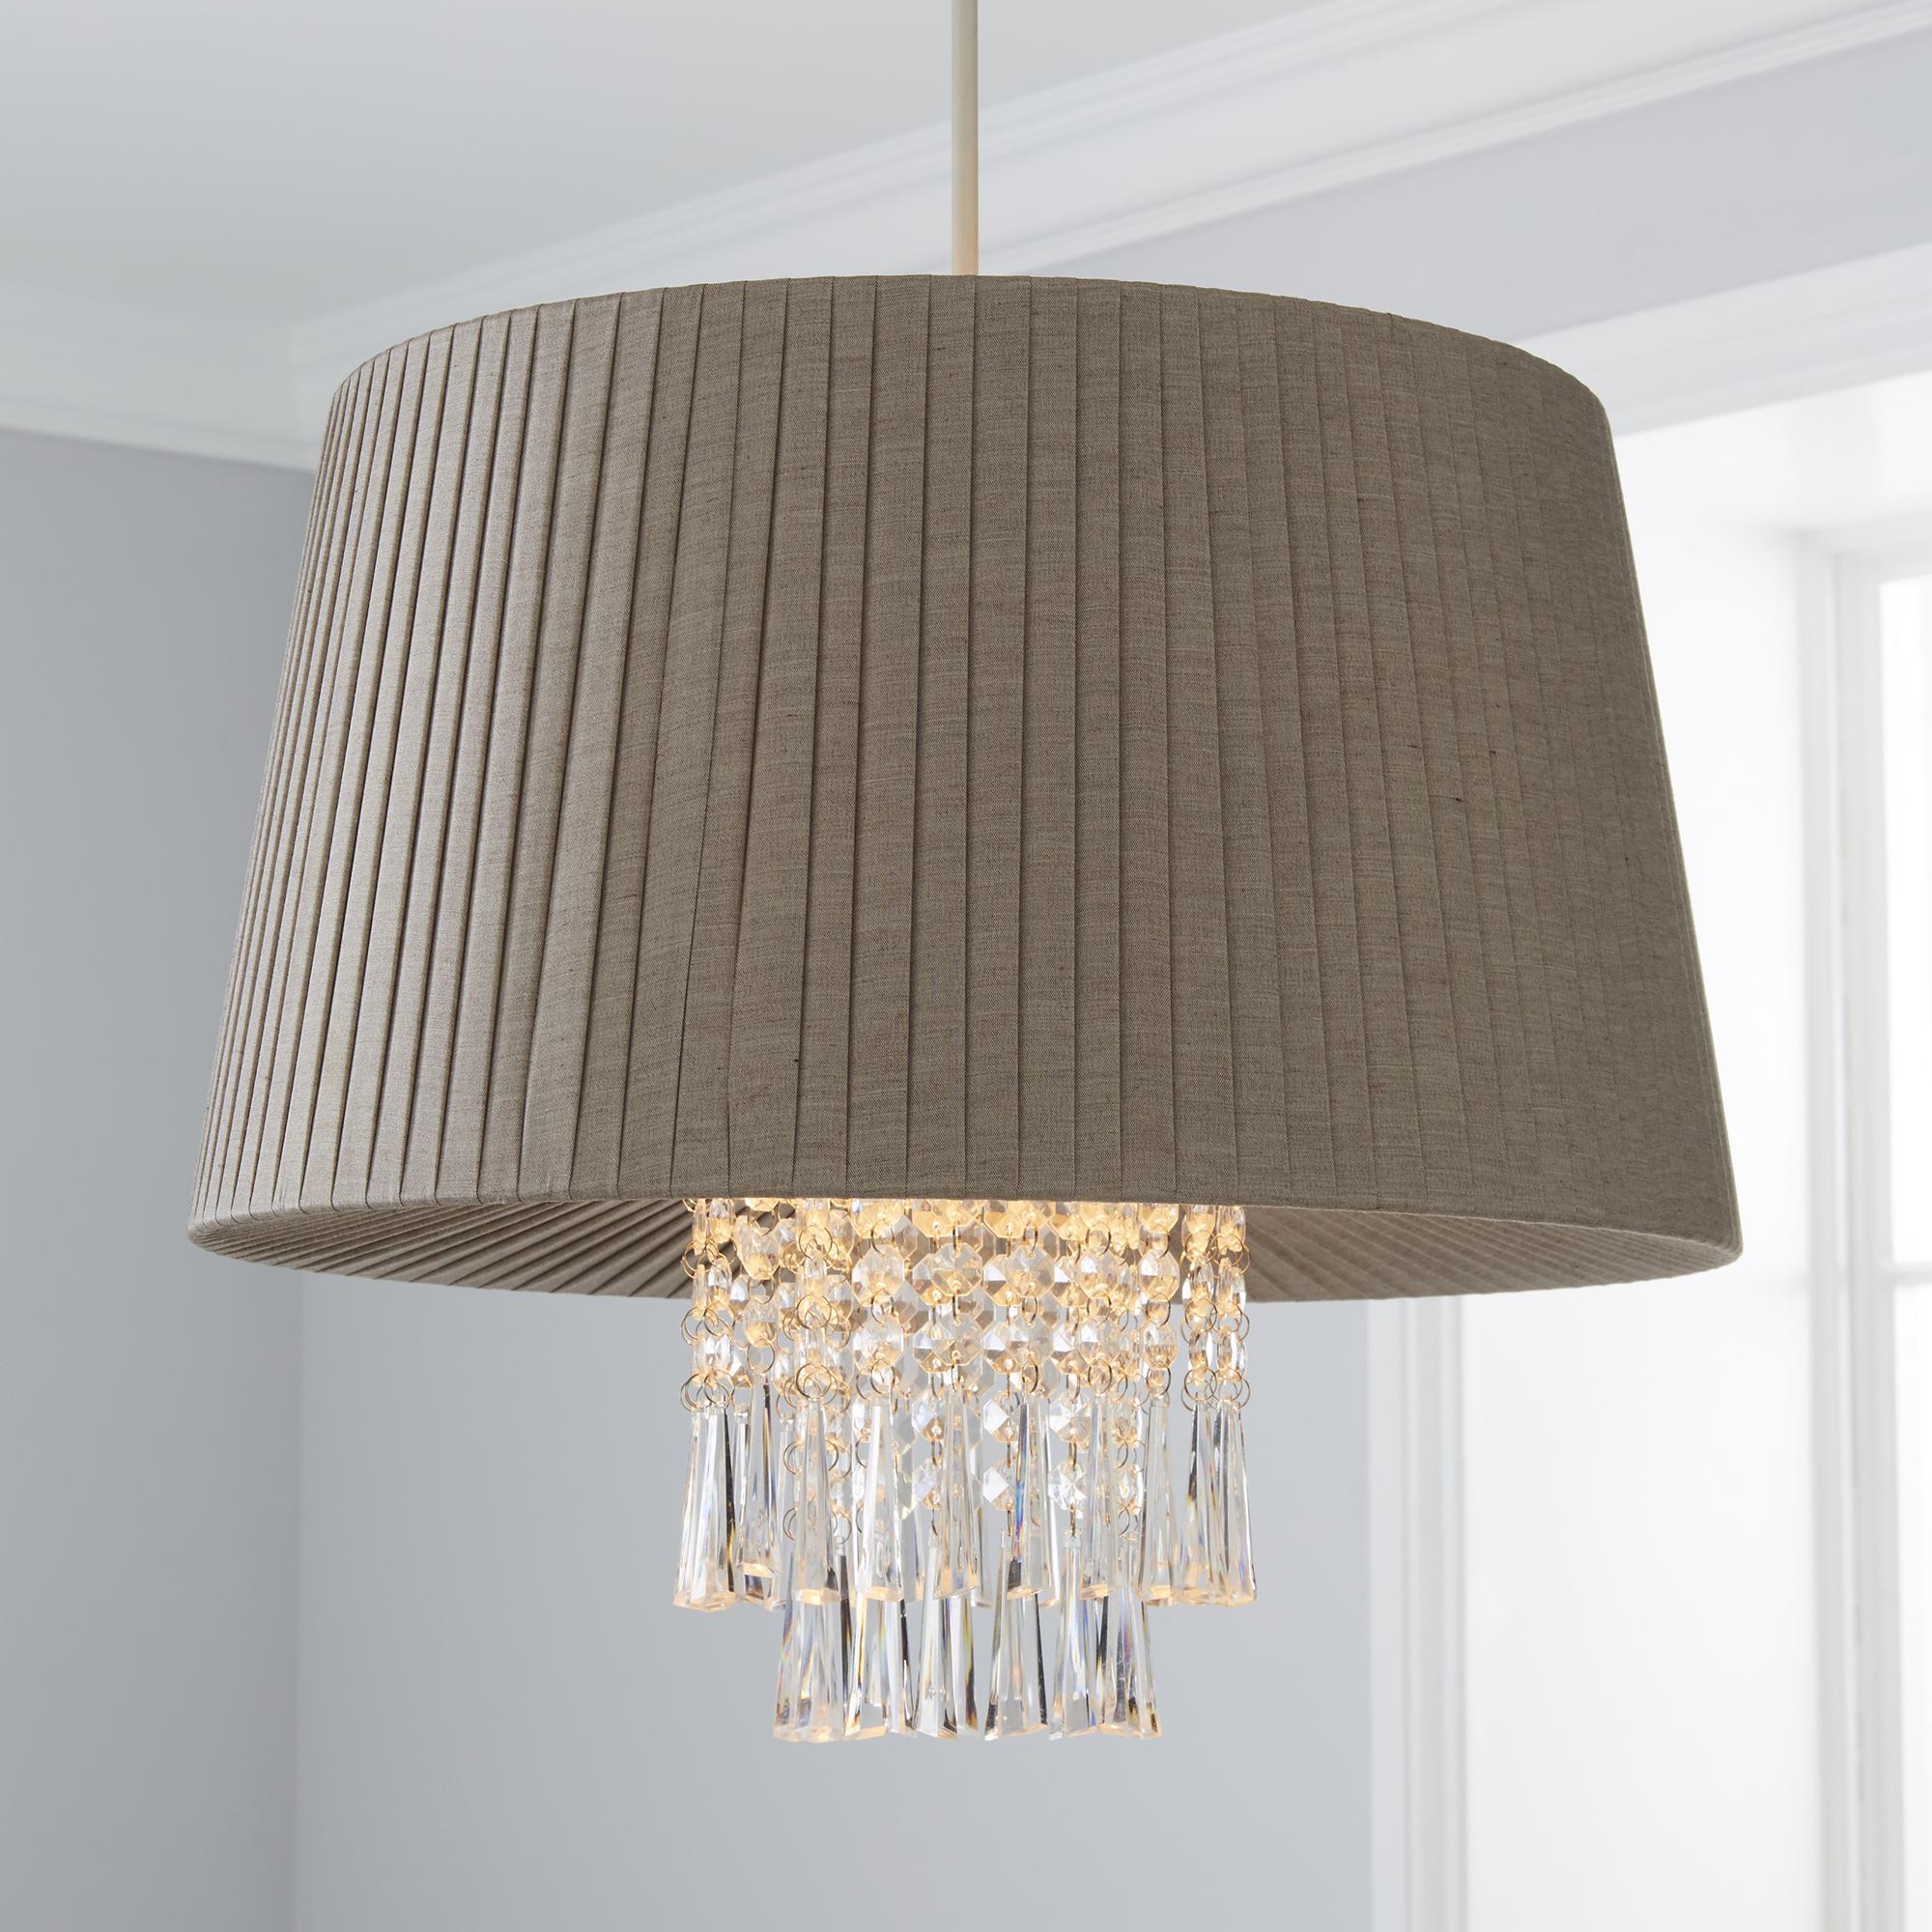 Dunelm Wall Lamp Shades : Lamp Shades Decorative Light Shades Dunelm